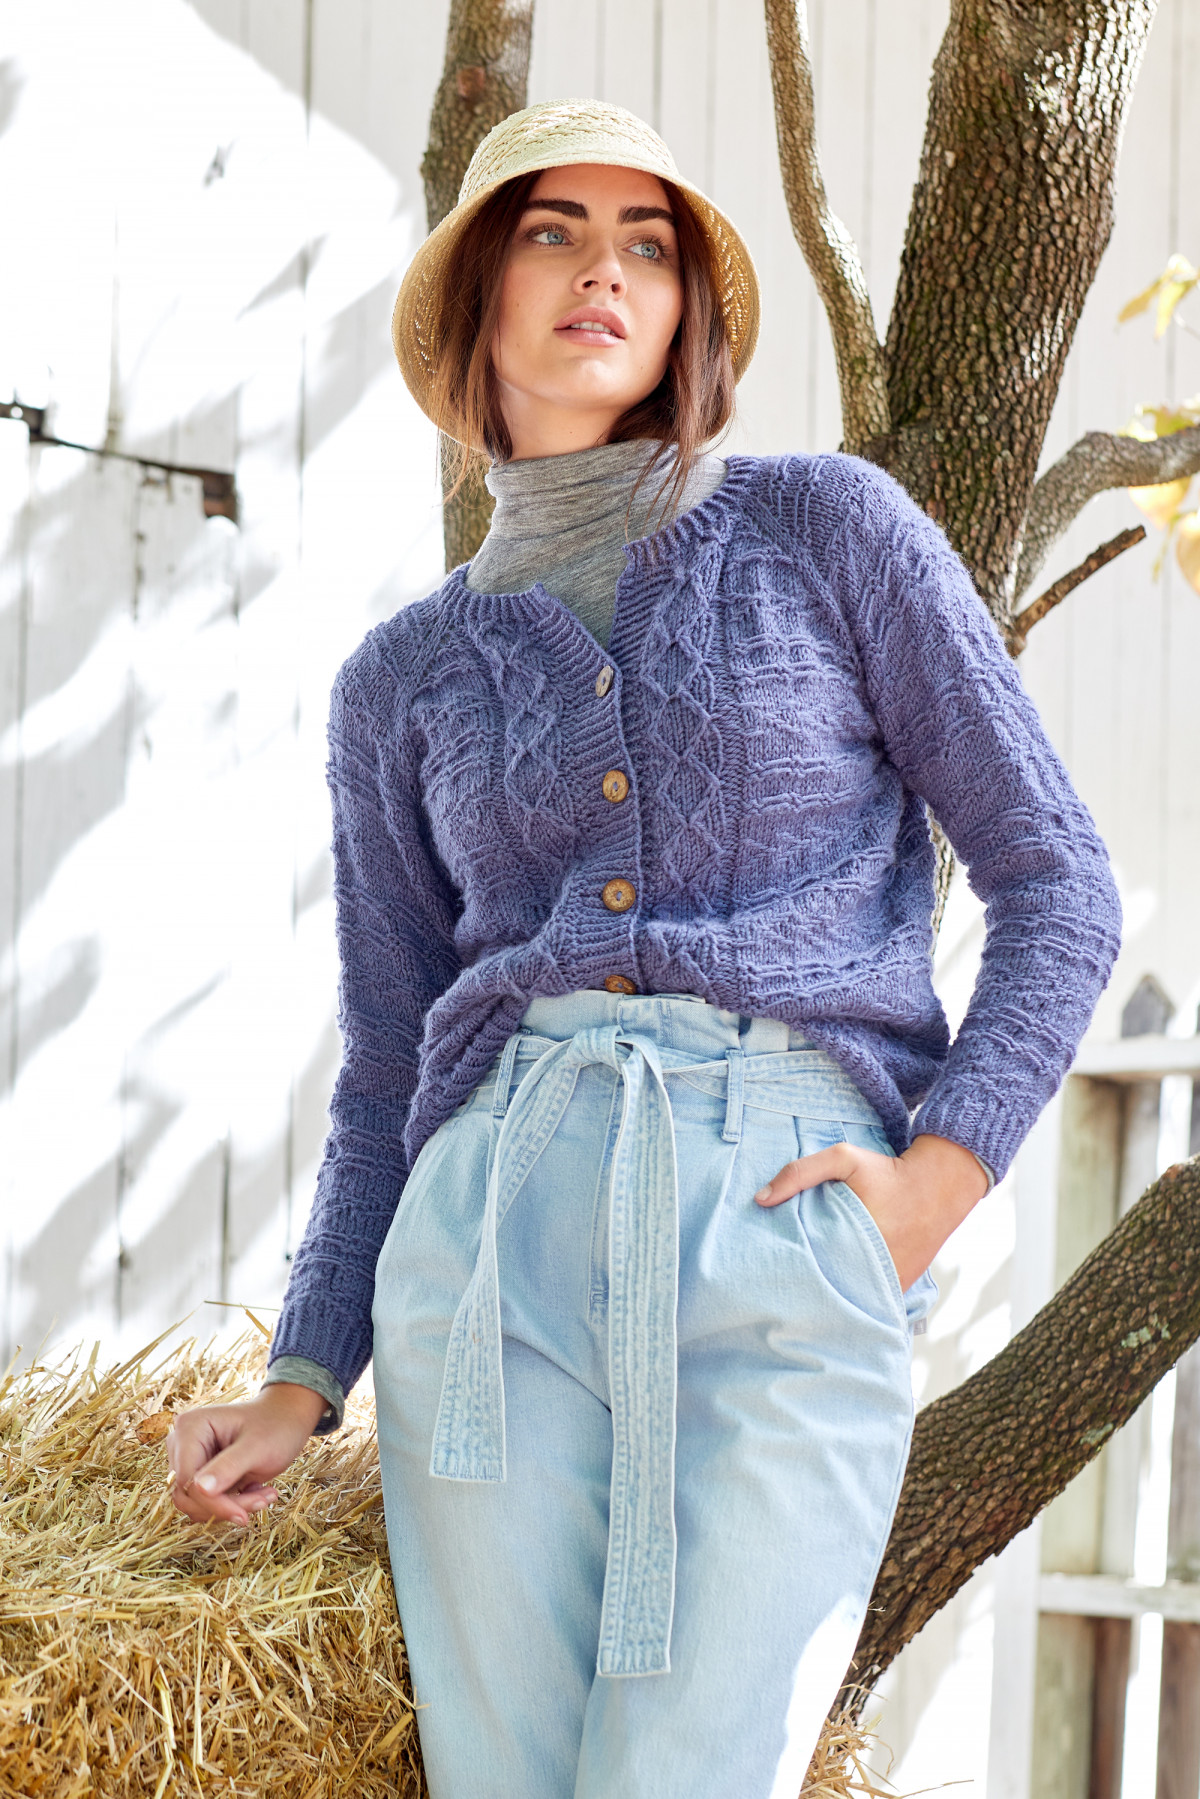 Editorial fashion photo of a female model wearing a straw hat and chunky purple knit cardigan